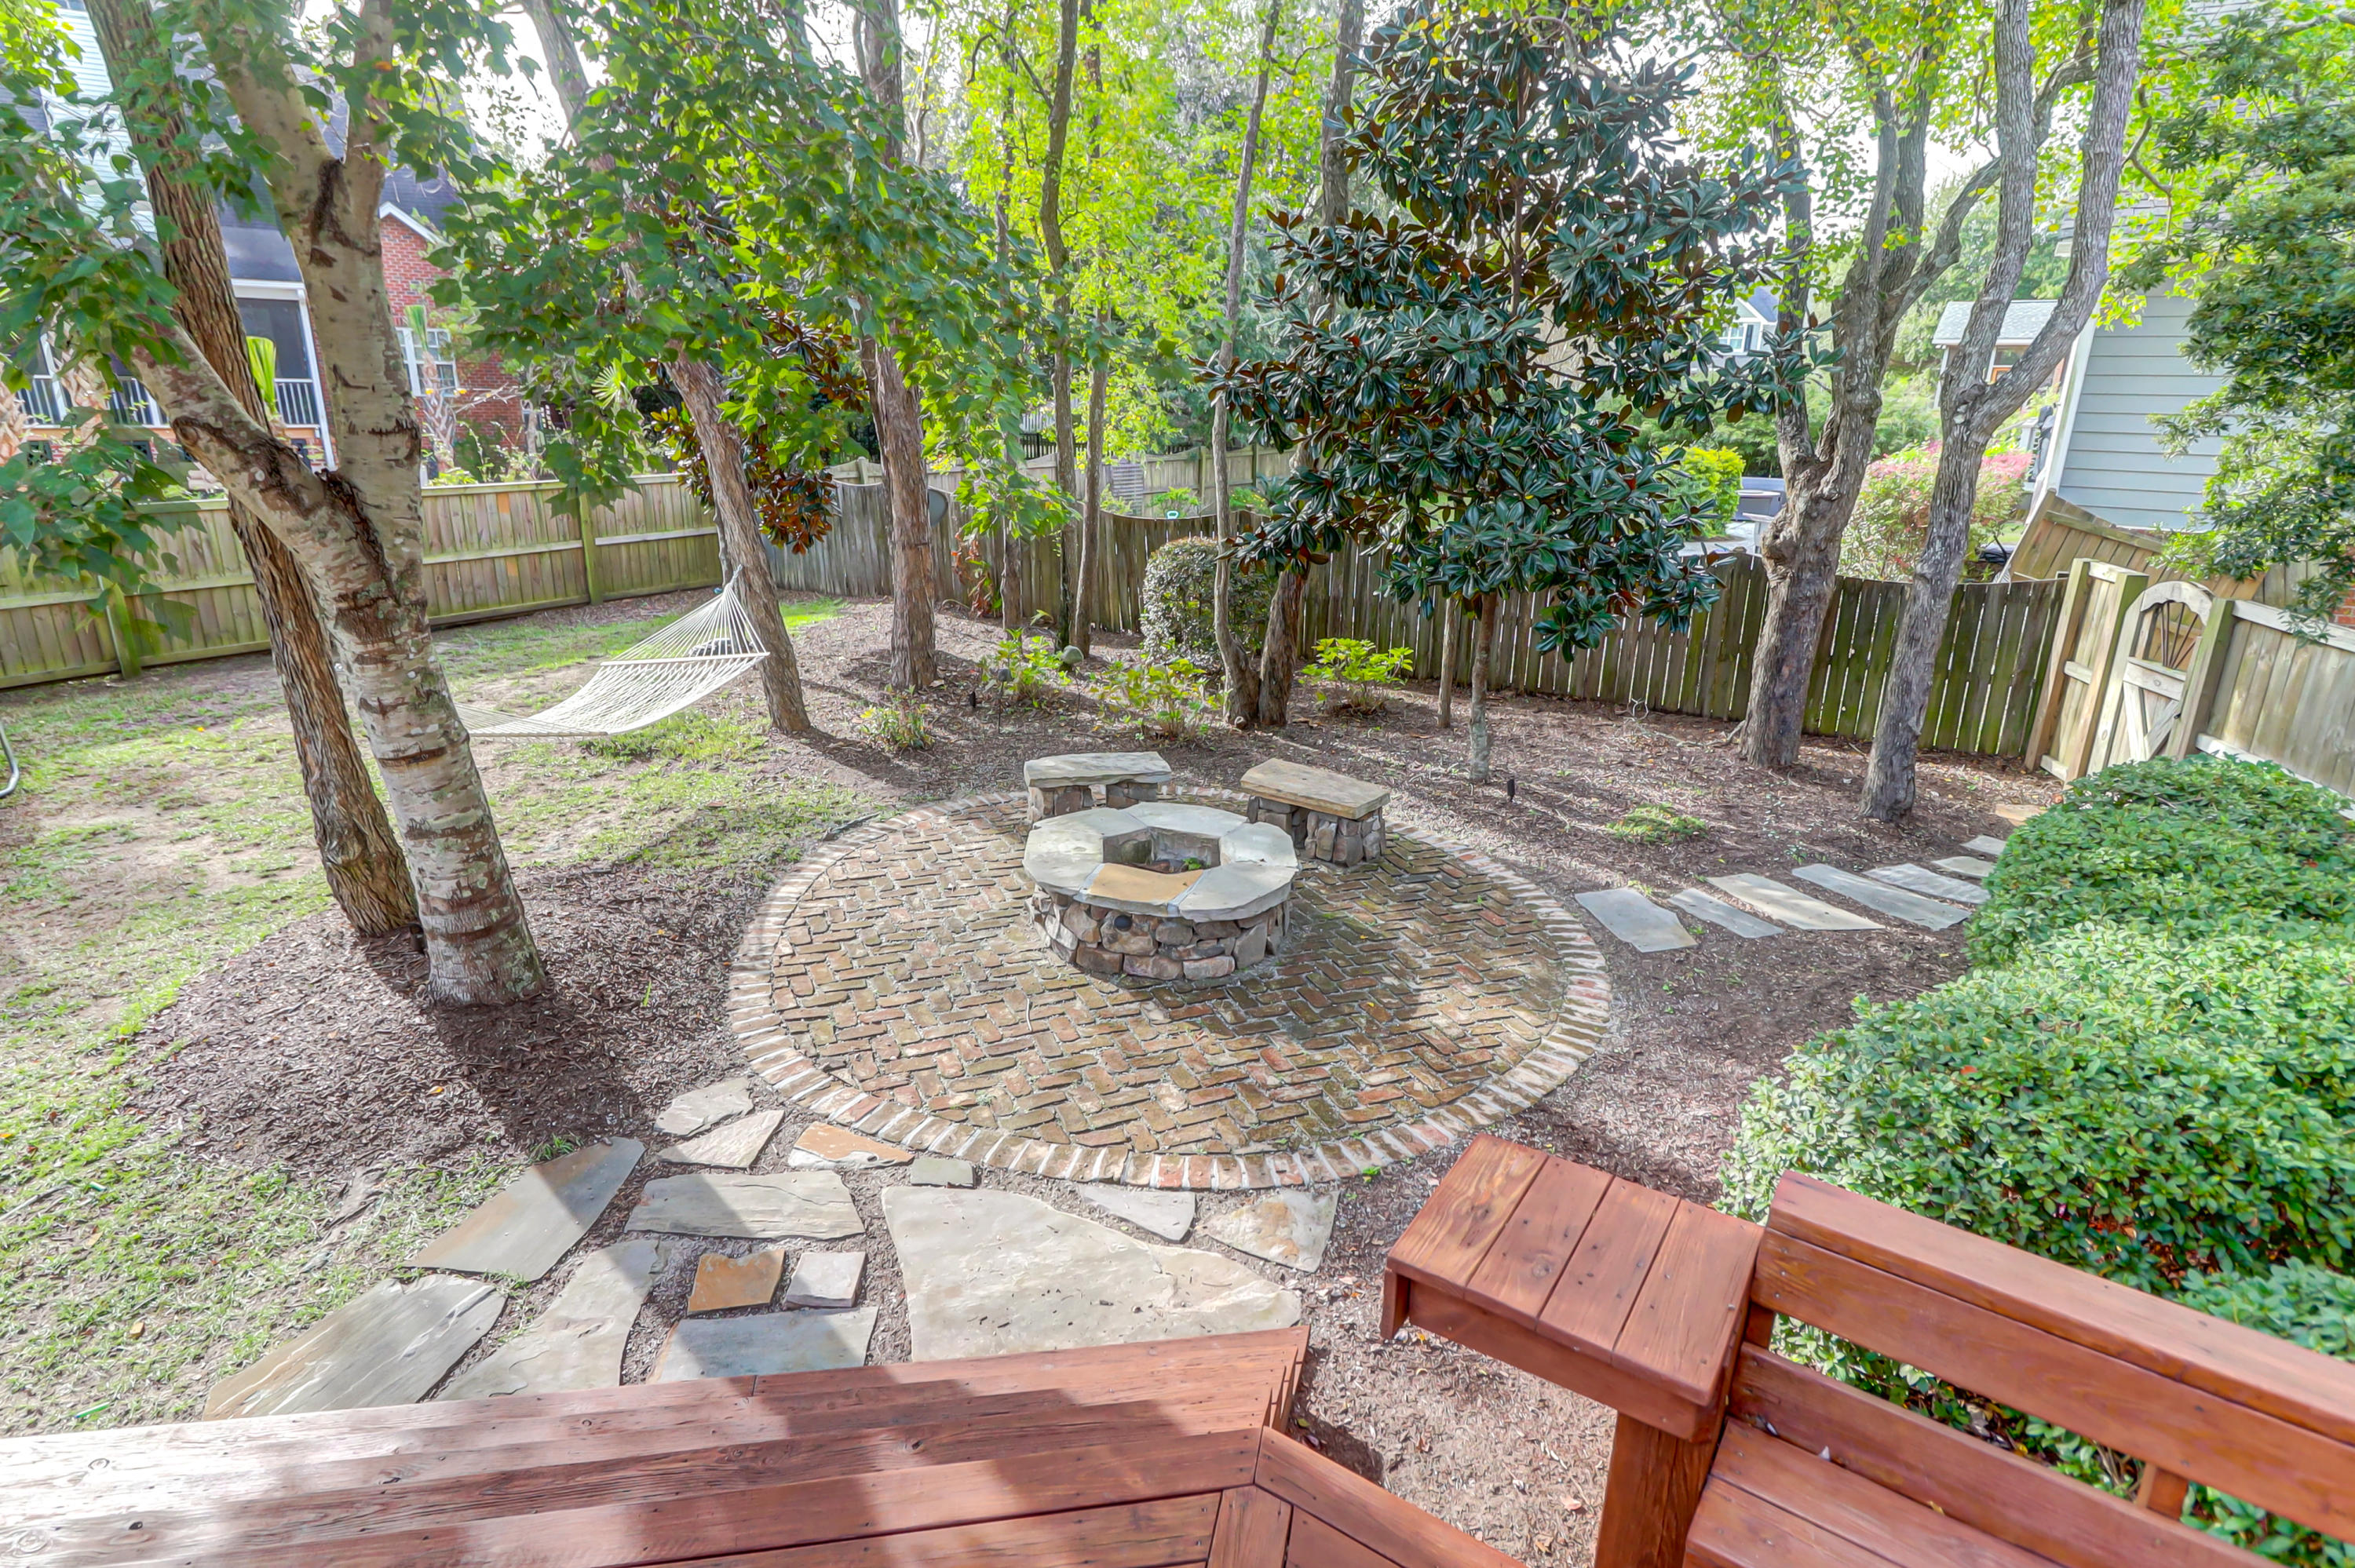 Woodward Pointe Homes For Sale - 657 White Chapel, Charleston, SC - 11